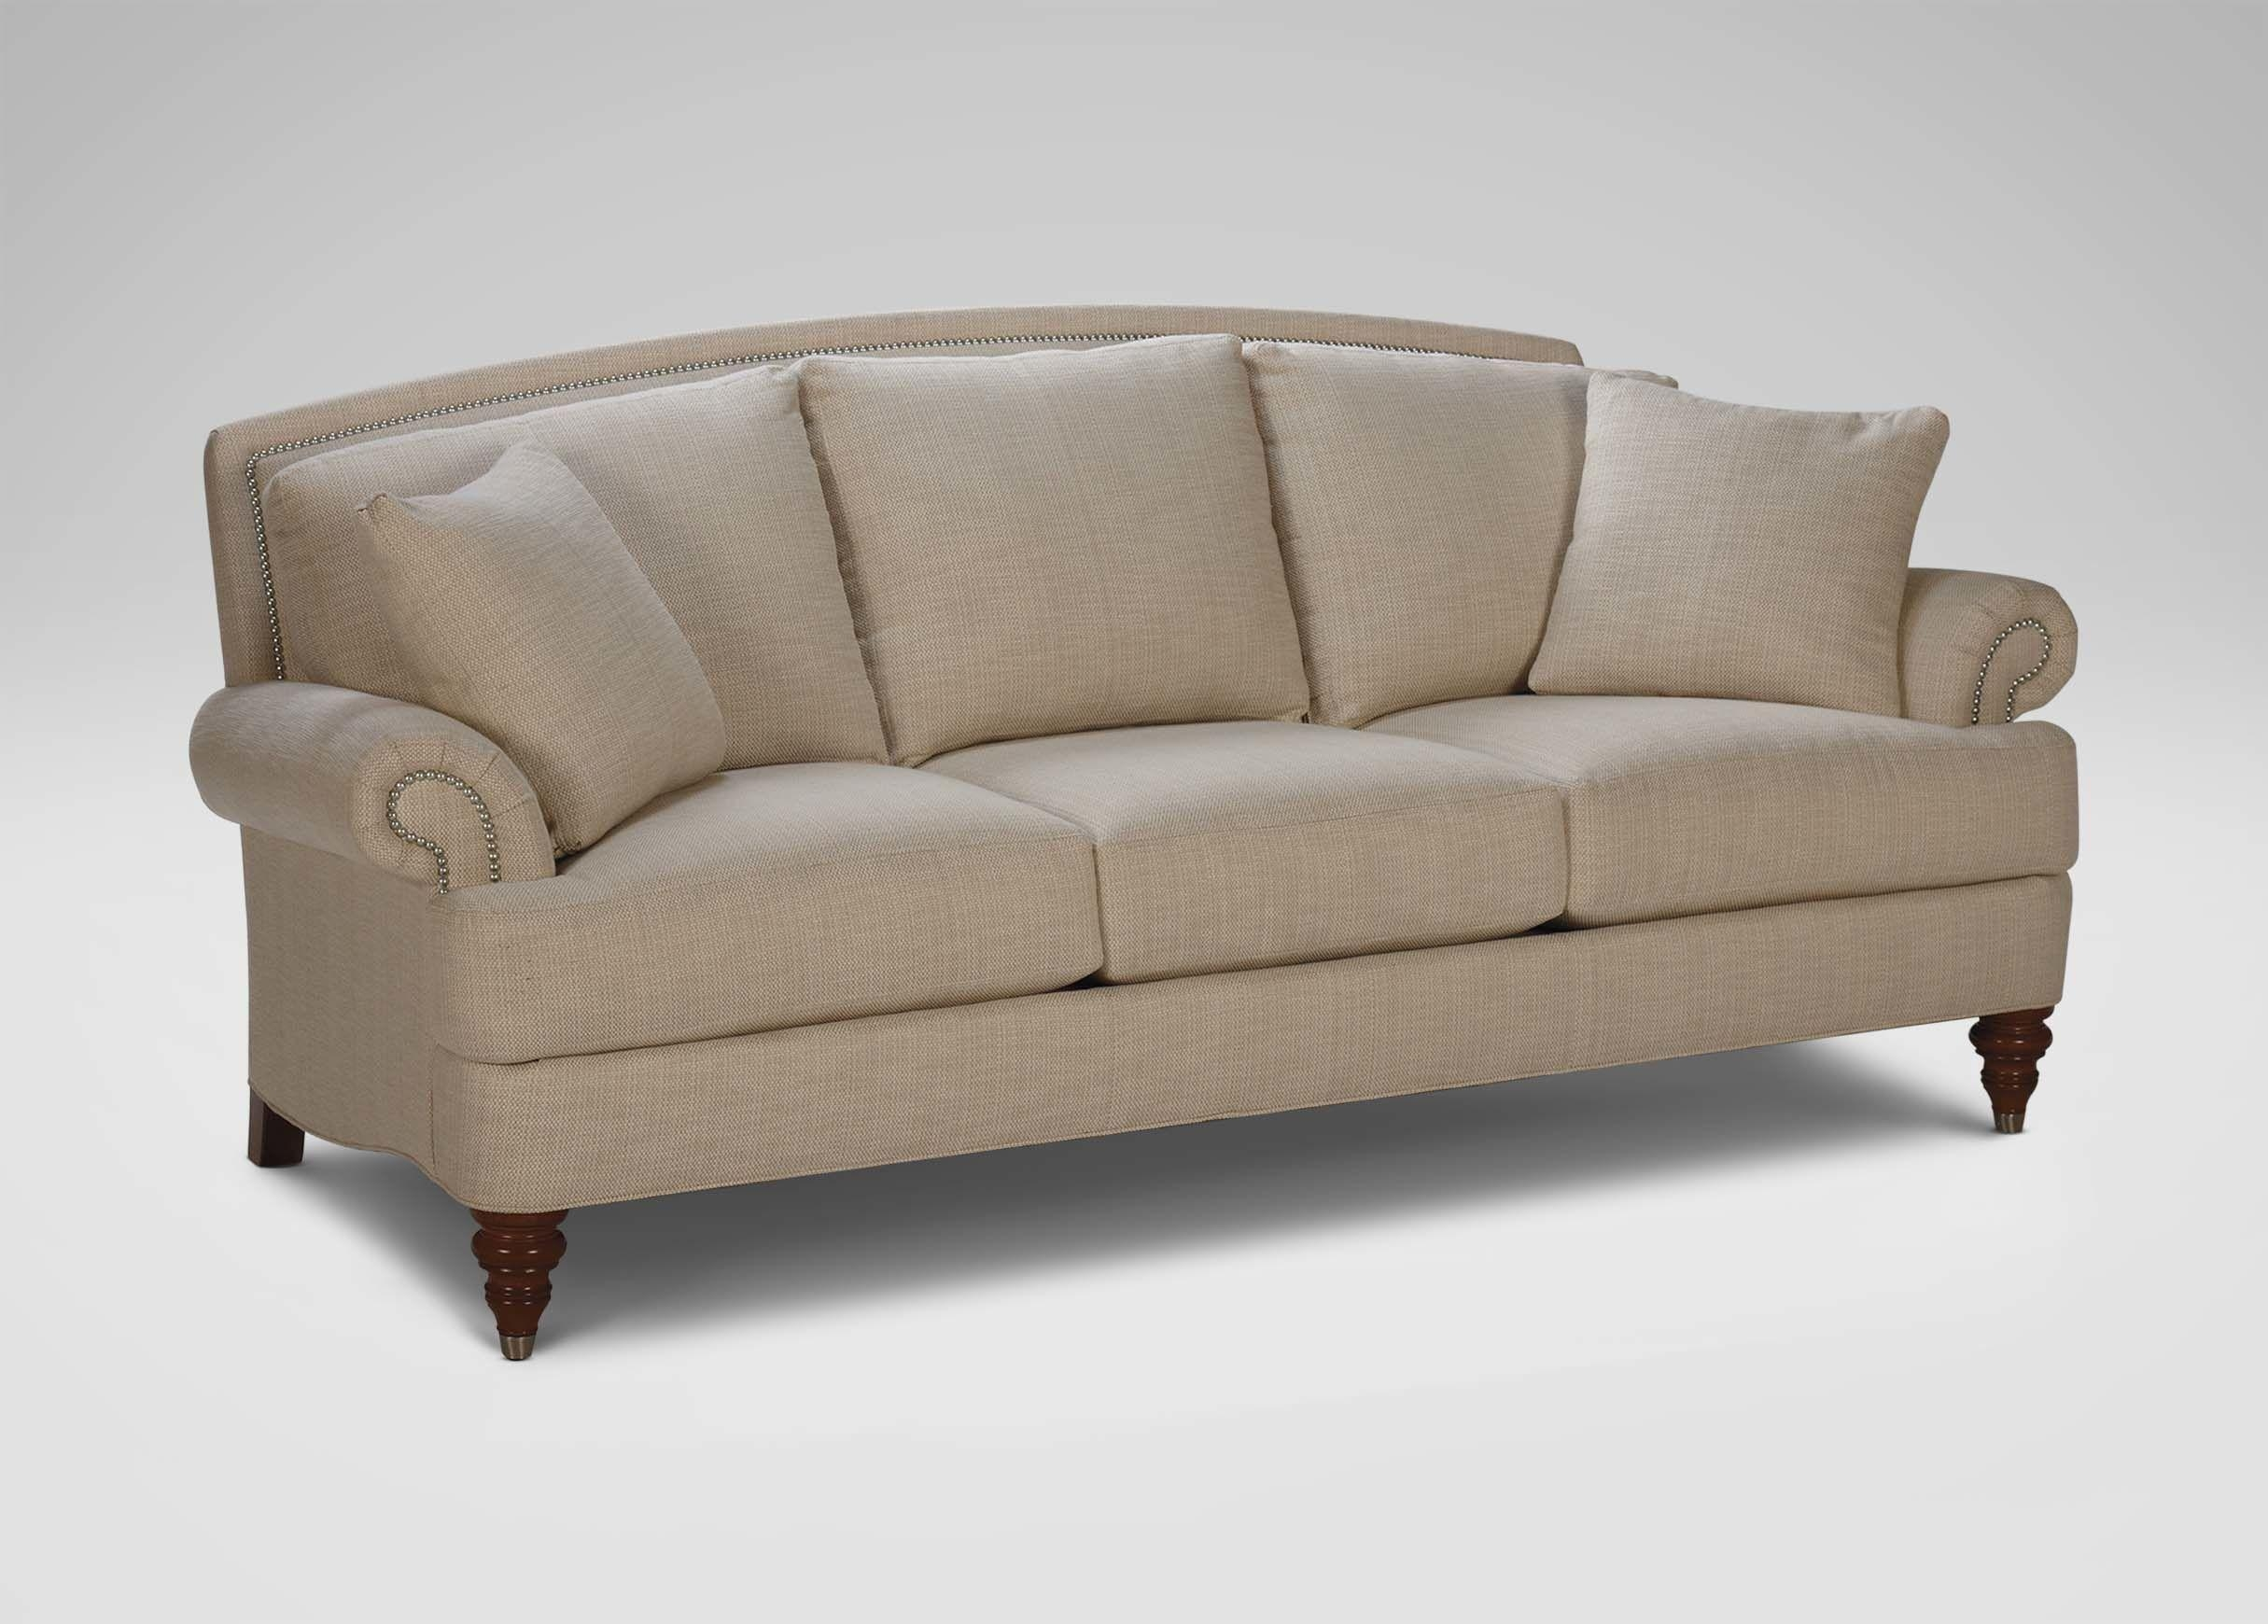 Ethan Allen Chesterfield Sofa Ethan Allen Chesterfield Sofa With Ethan Allen Chesterfield Sofas (View 14 of 20)